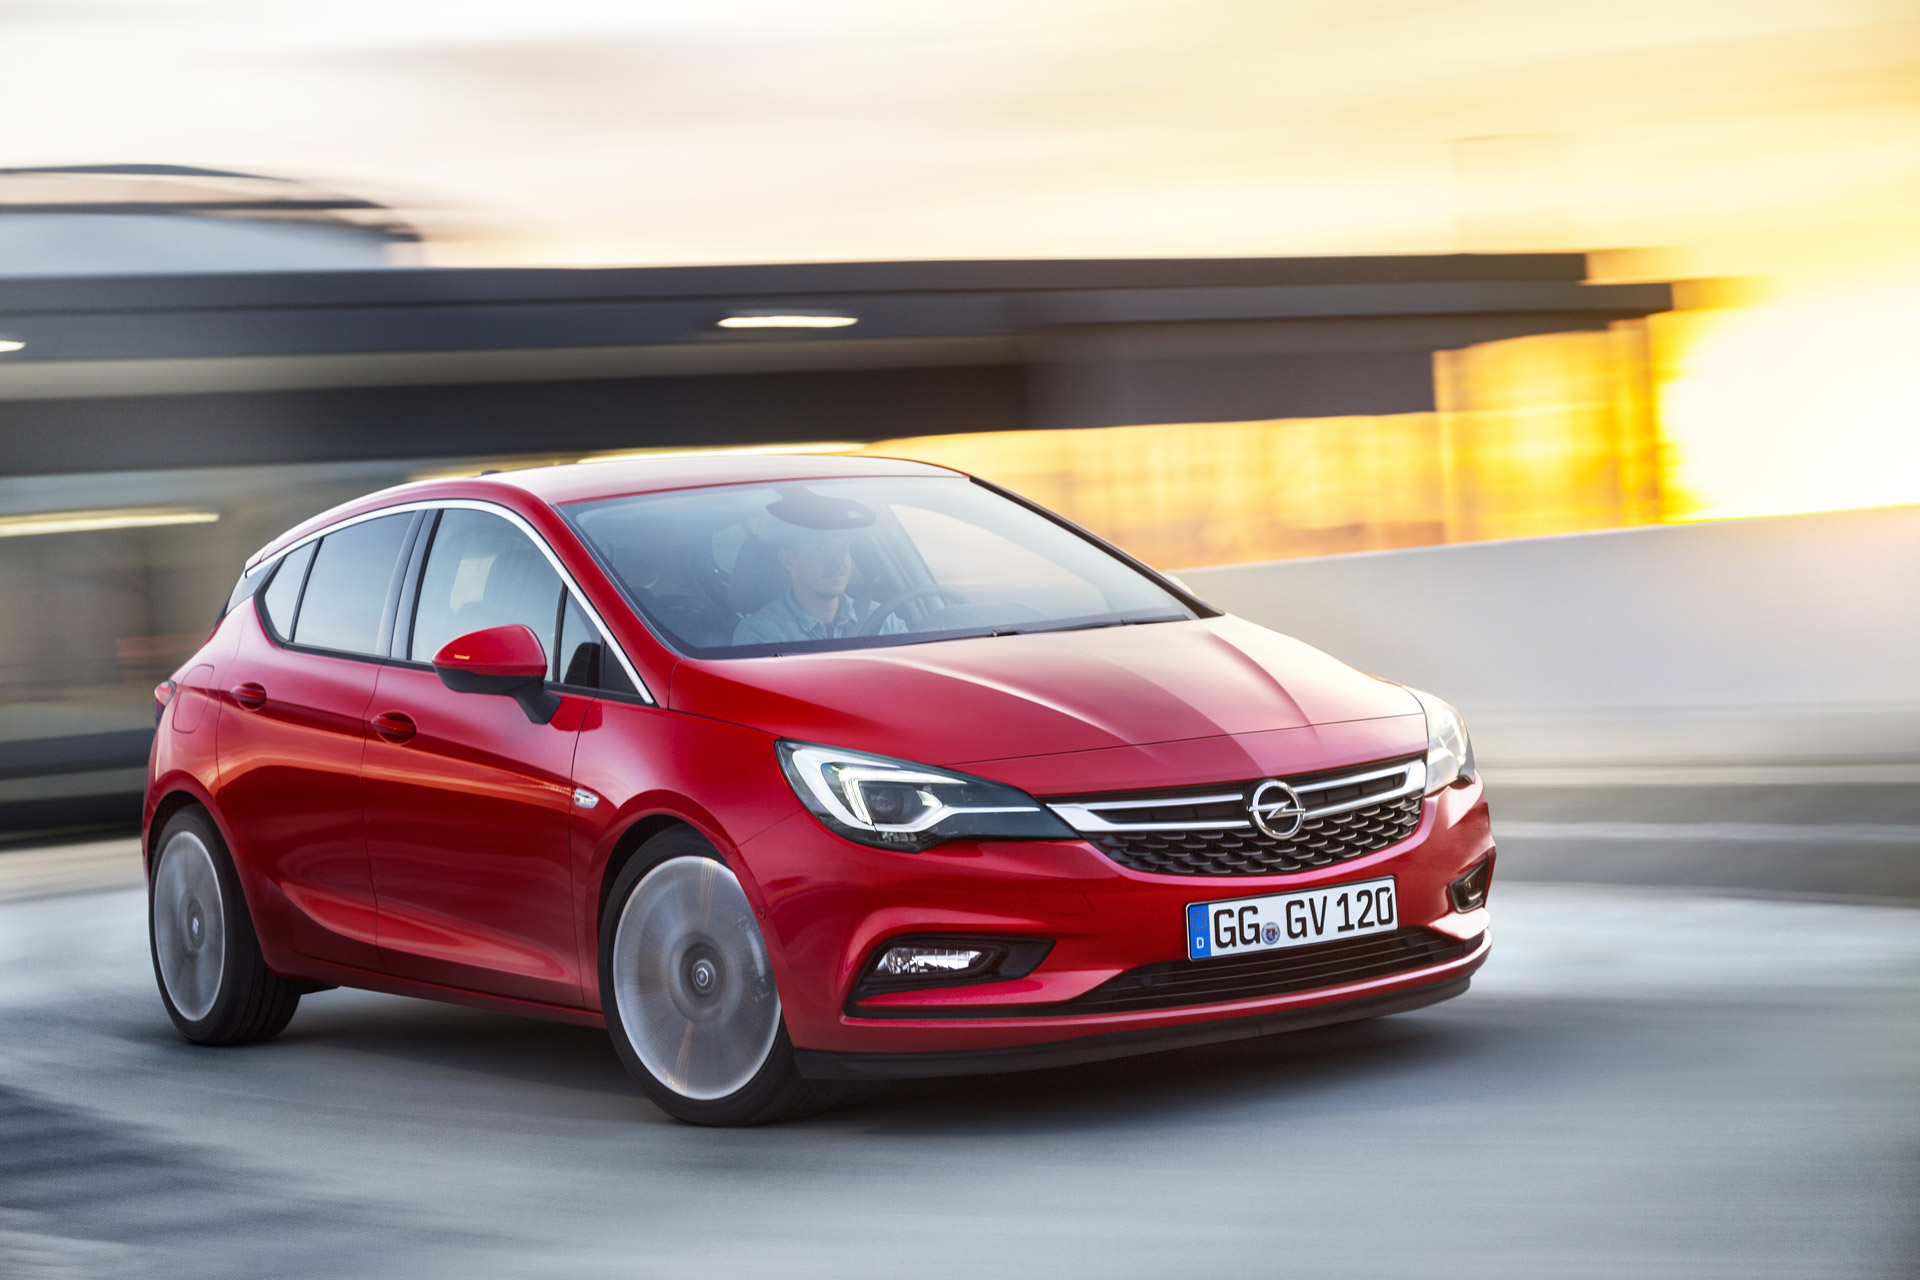 Performance: 2016 Opel Astra